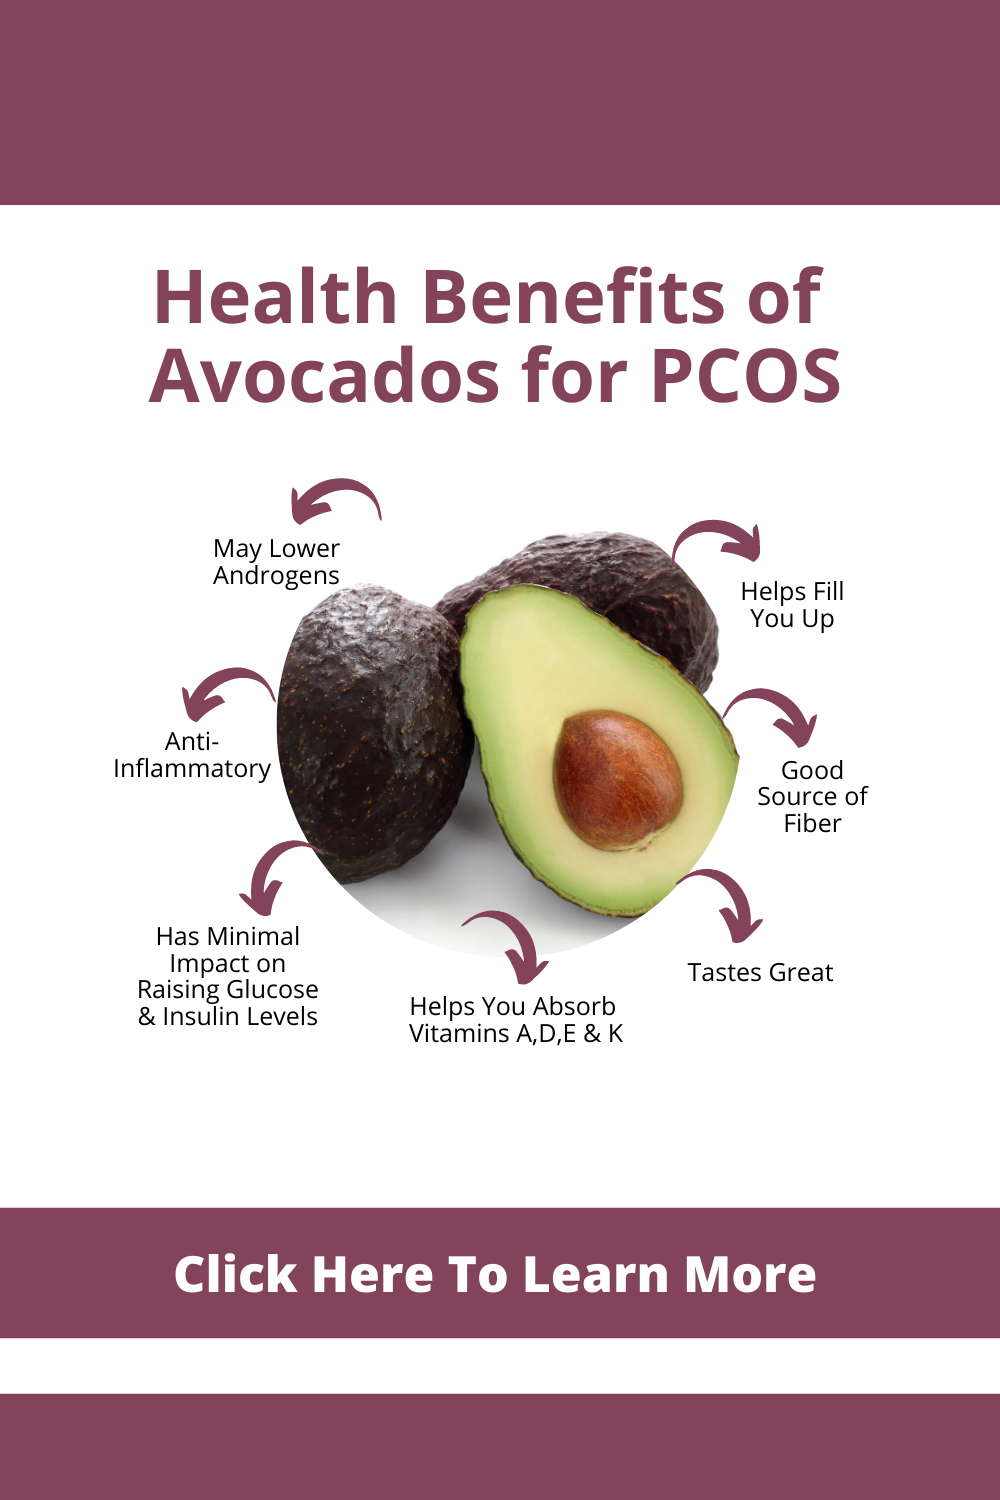 Why Avocados Are Good For Pcos Pcos Nutrition Center In 2020 Avocado Health Benefits Pcos Healthy Morning Smoothies